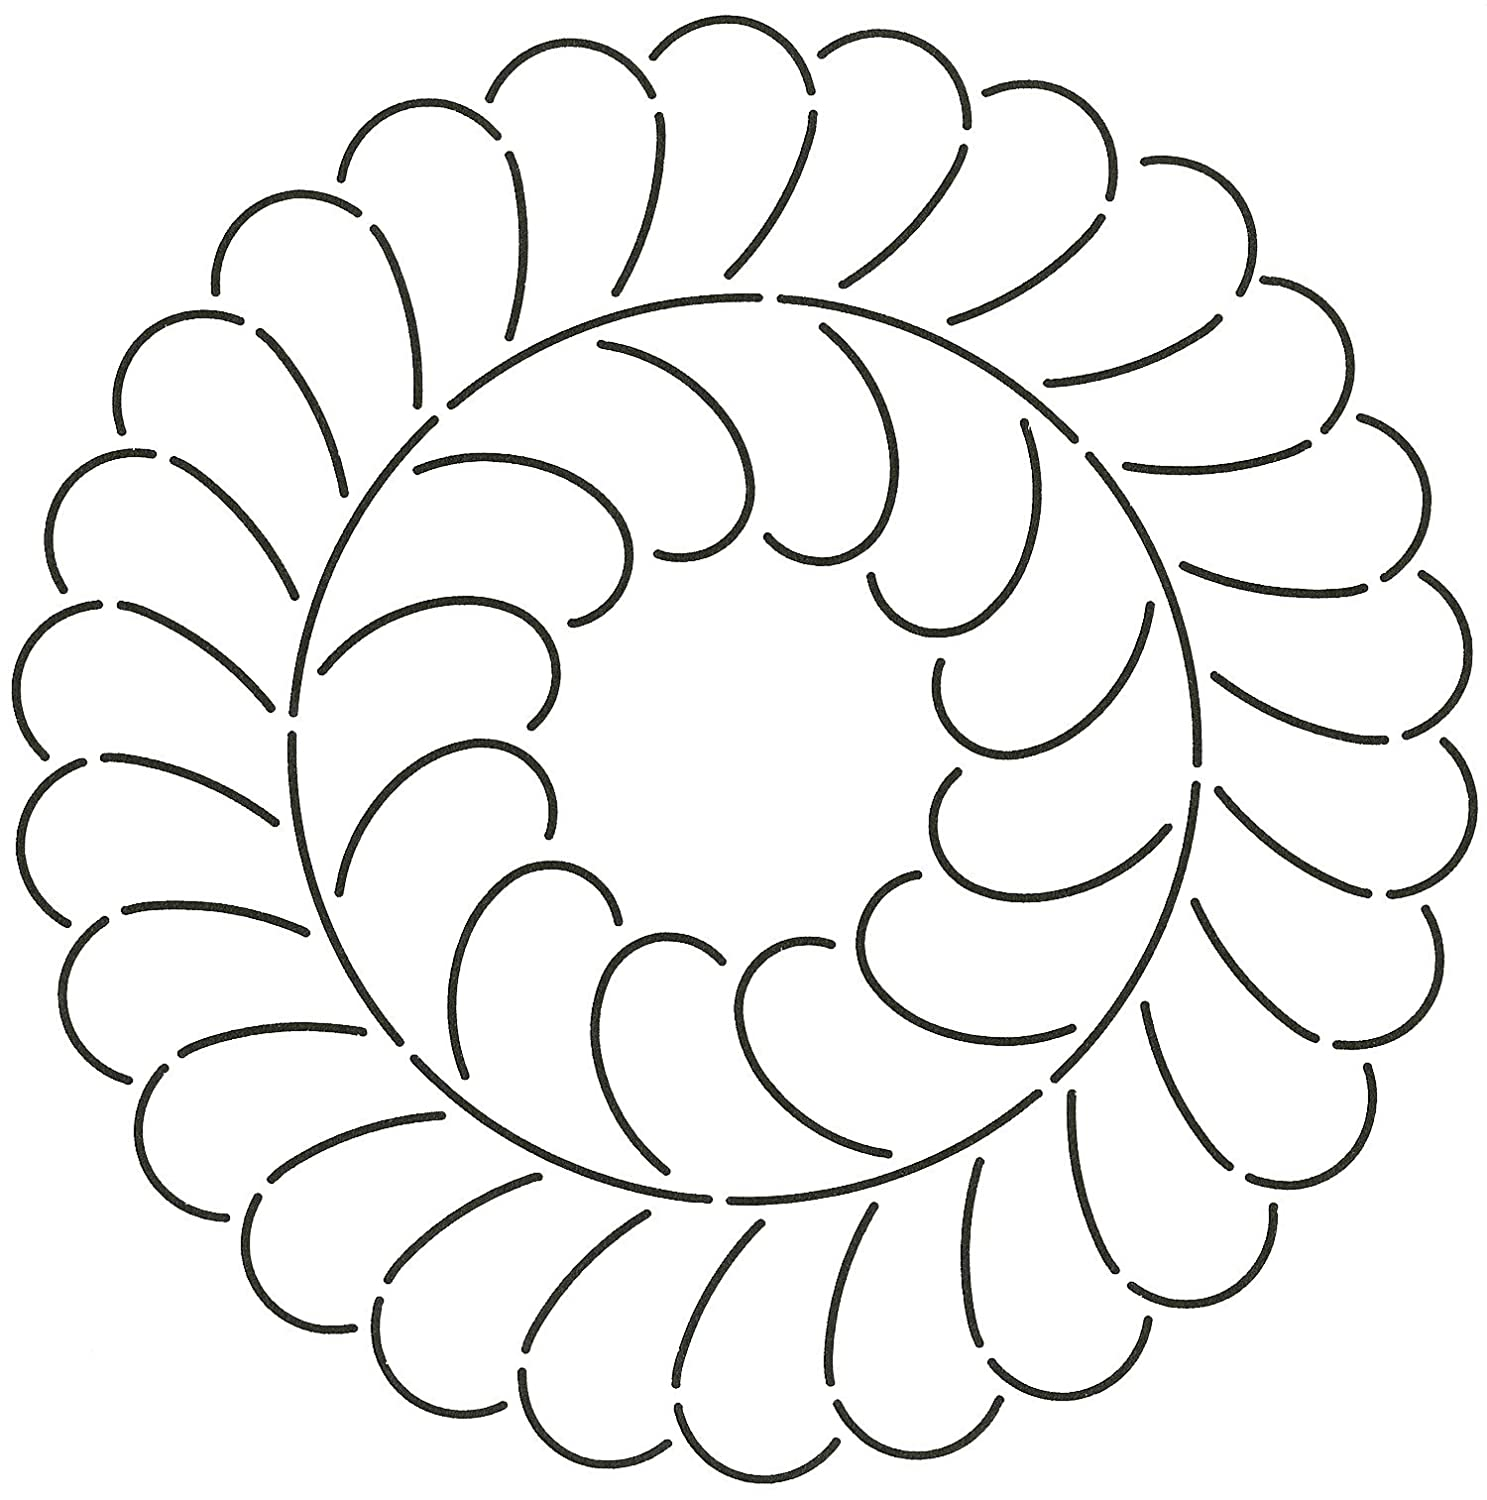 Quilting Creations Feather Circle Quilt Stencil, 10 10 241QC